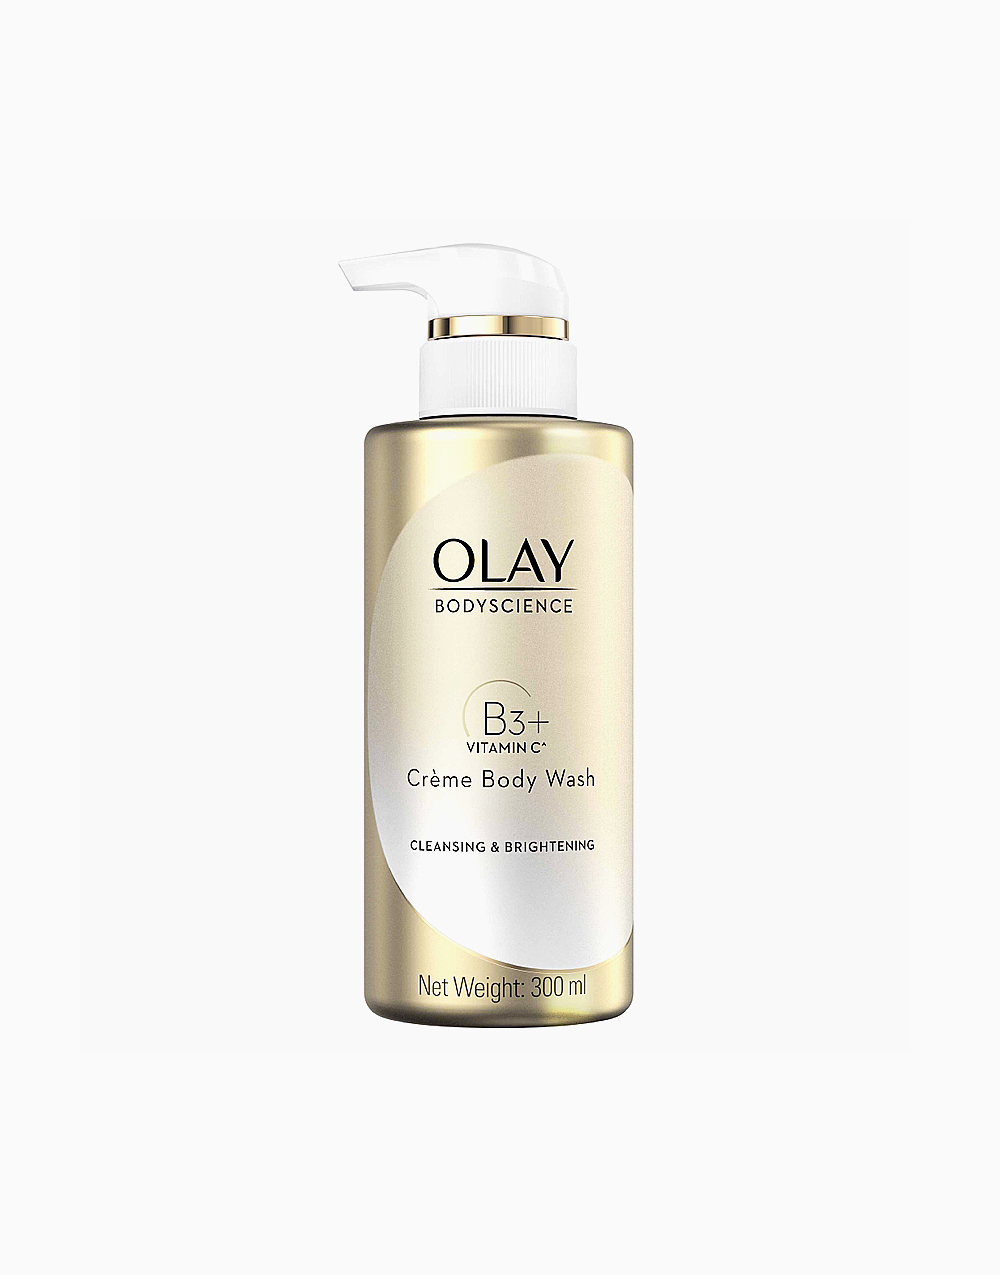 Olay Body Science Cleansing and Brightening Crème Body Wash with Niacinamide (300ml) by Olay